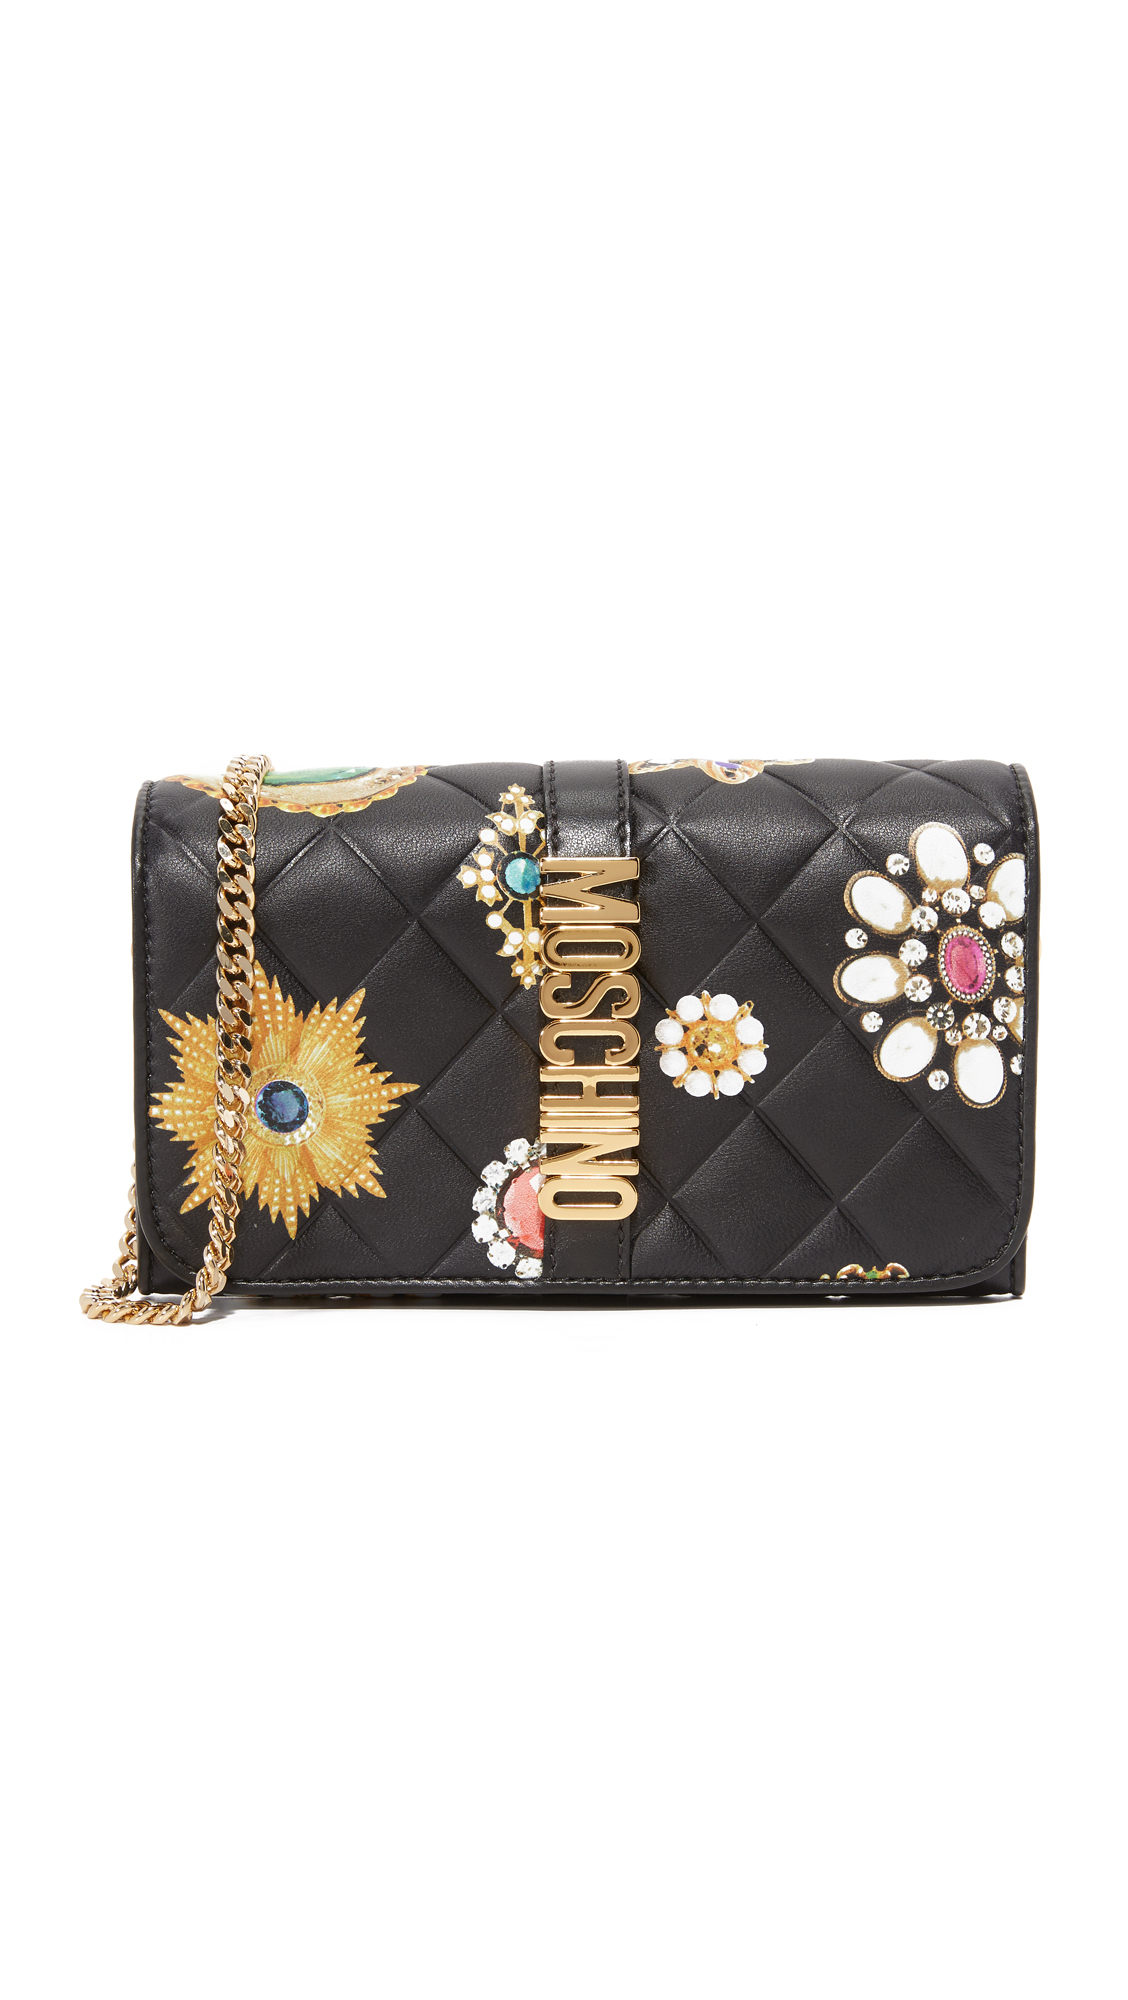 A playful Moschino cross body bag crafted in quilted, jewel printed calfskin. Polished logo letters detail the magnetic front flap. Lined, 2 pocket interior. Dust bag included. Leather: Calfskin. Weight: 12oz / 0.34kg. Made in Italy. Measurements Height: 4.25